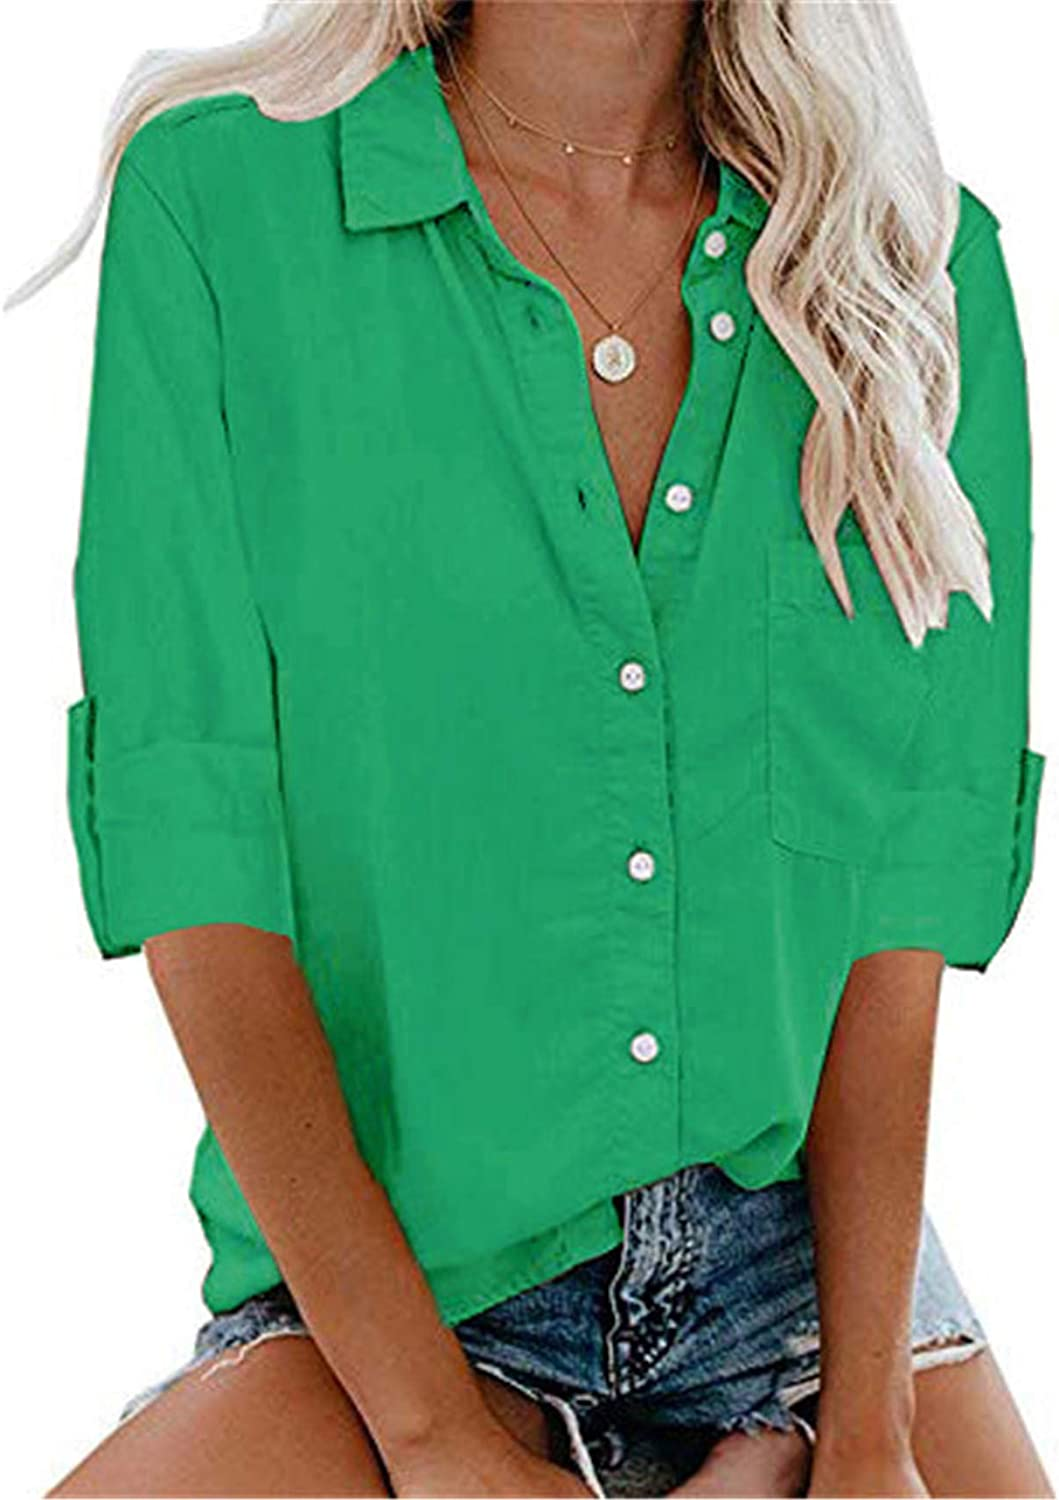 Andongnywell Women's Short Sleeve V Neck Blouse Super popular specialty store Do Button Max 76% OFF